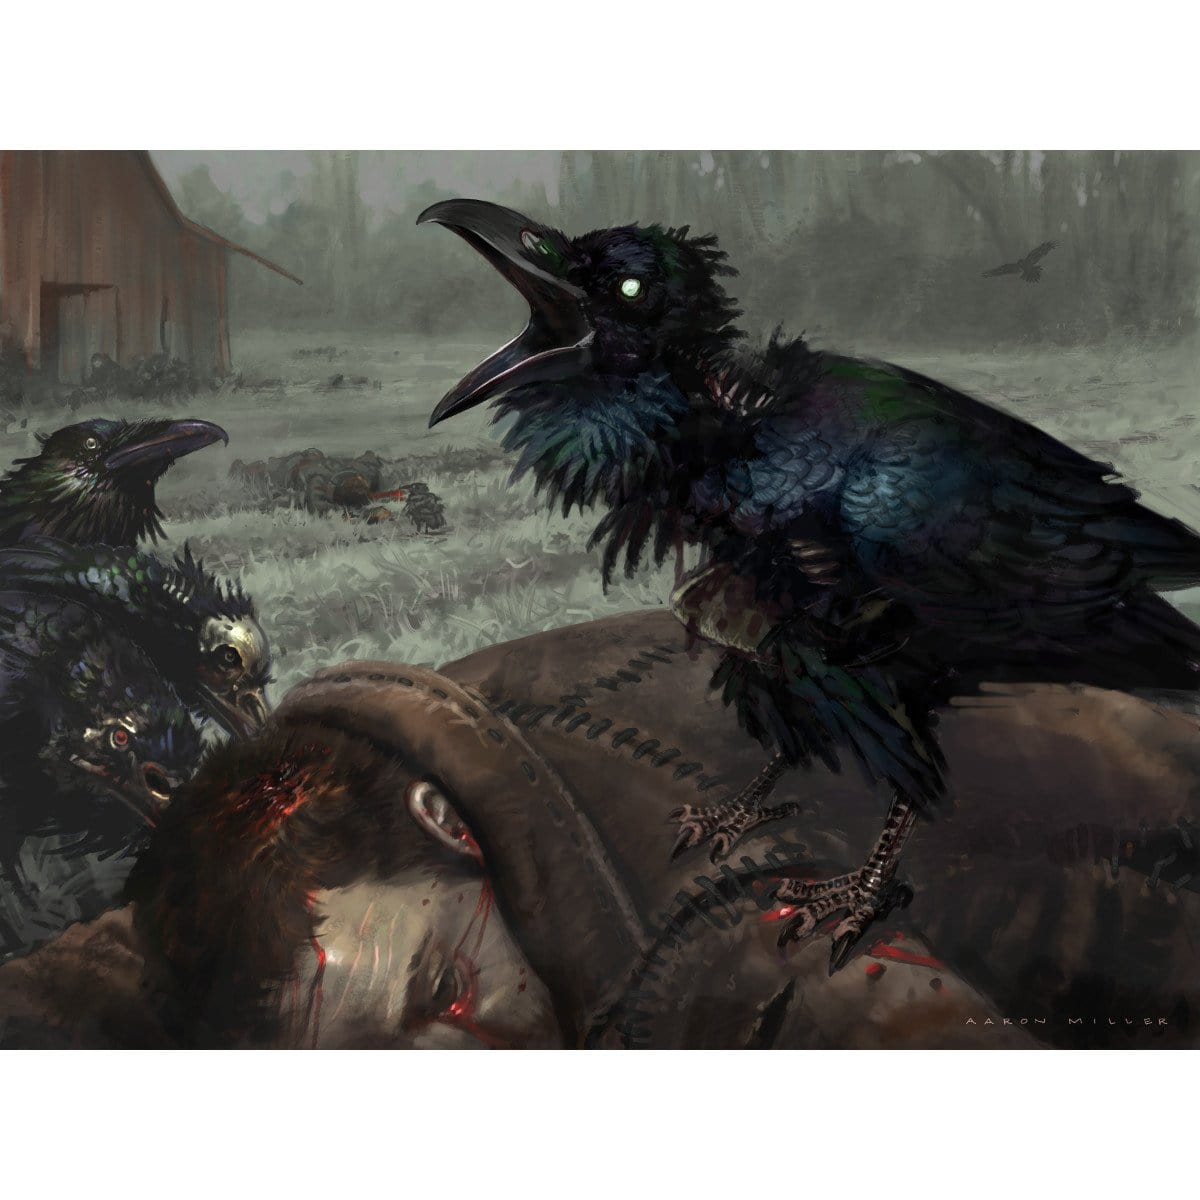 Carrion Crow Print - Print - Original Magic Art - Accessories for Magic the Gathering and other card games